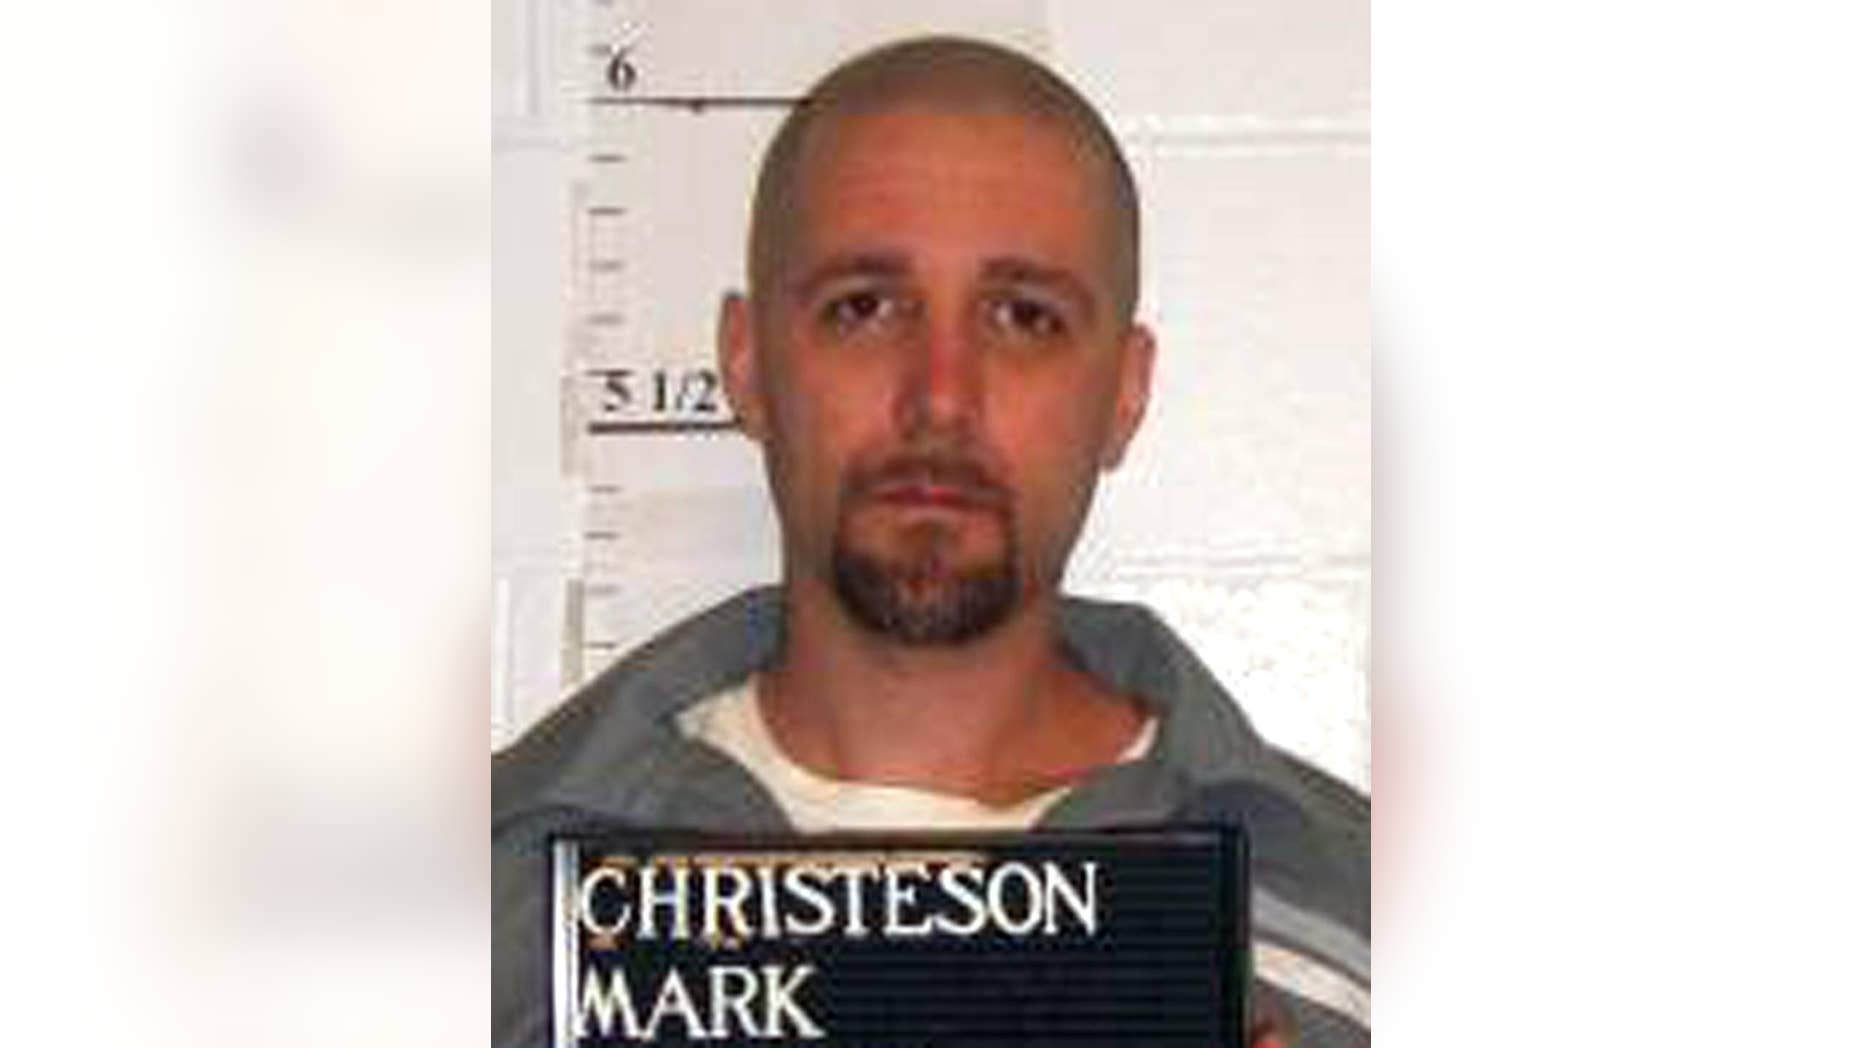 In this April 21, 2014 photo provided by the Missouri Department of Corrections is Mark Christeson who is scheduled to die by injection for killing a south-central Missouri mother and her two children in February 1998. (AP Photo/Missouri Department of Corrections)